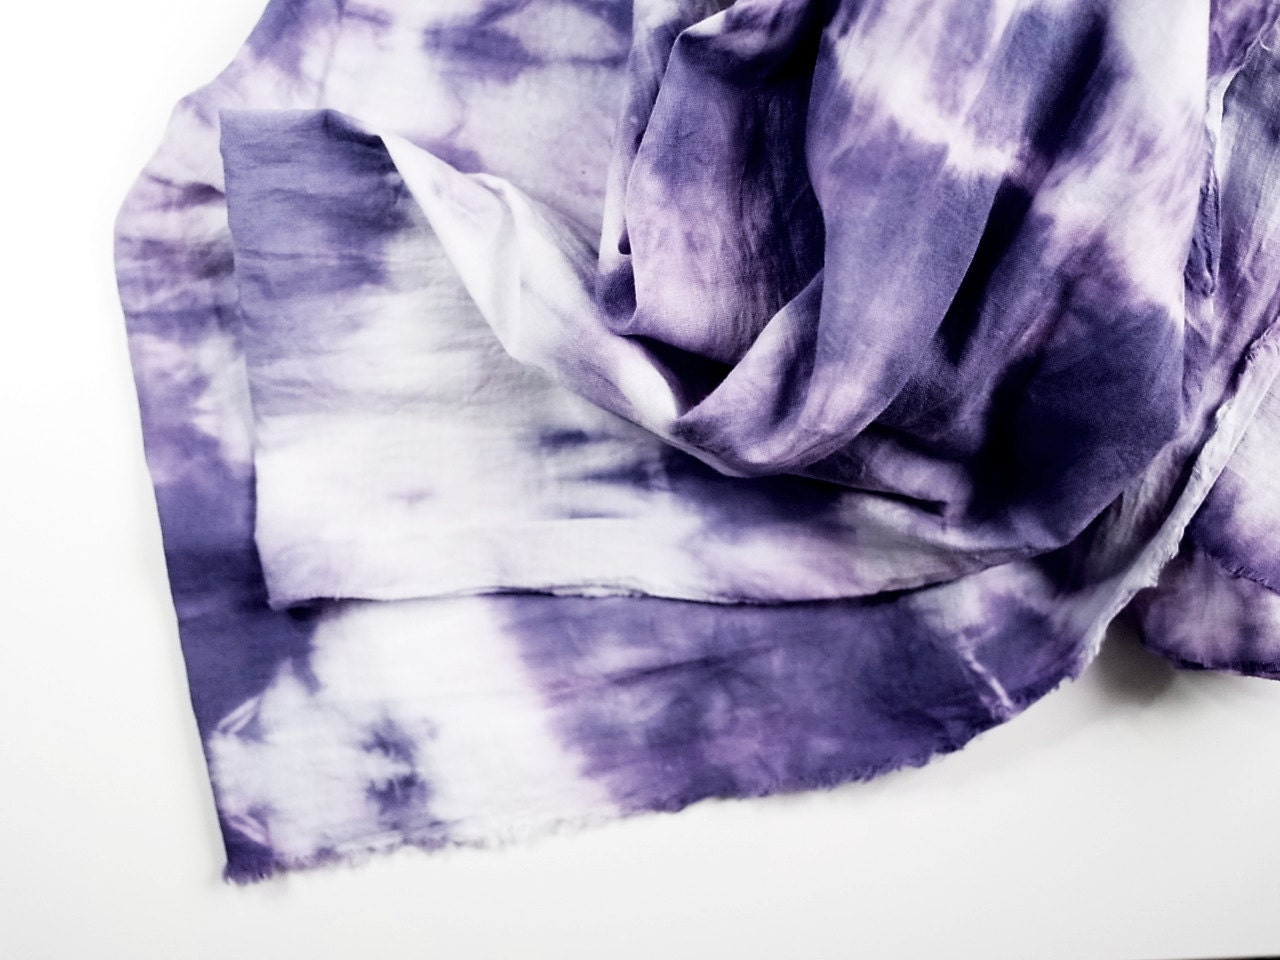 Scarf: purple / Ultra violet hand dyed 100% oversized cotton scarf / shawl (summer trend / tie dye / fashion accessory) - KMBerlin